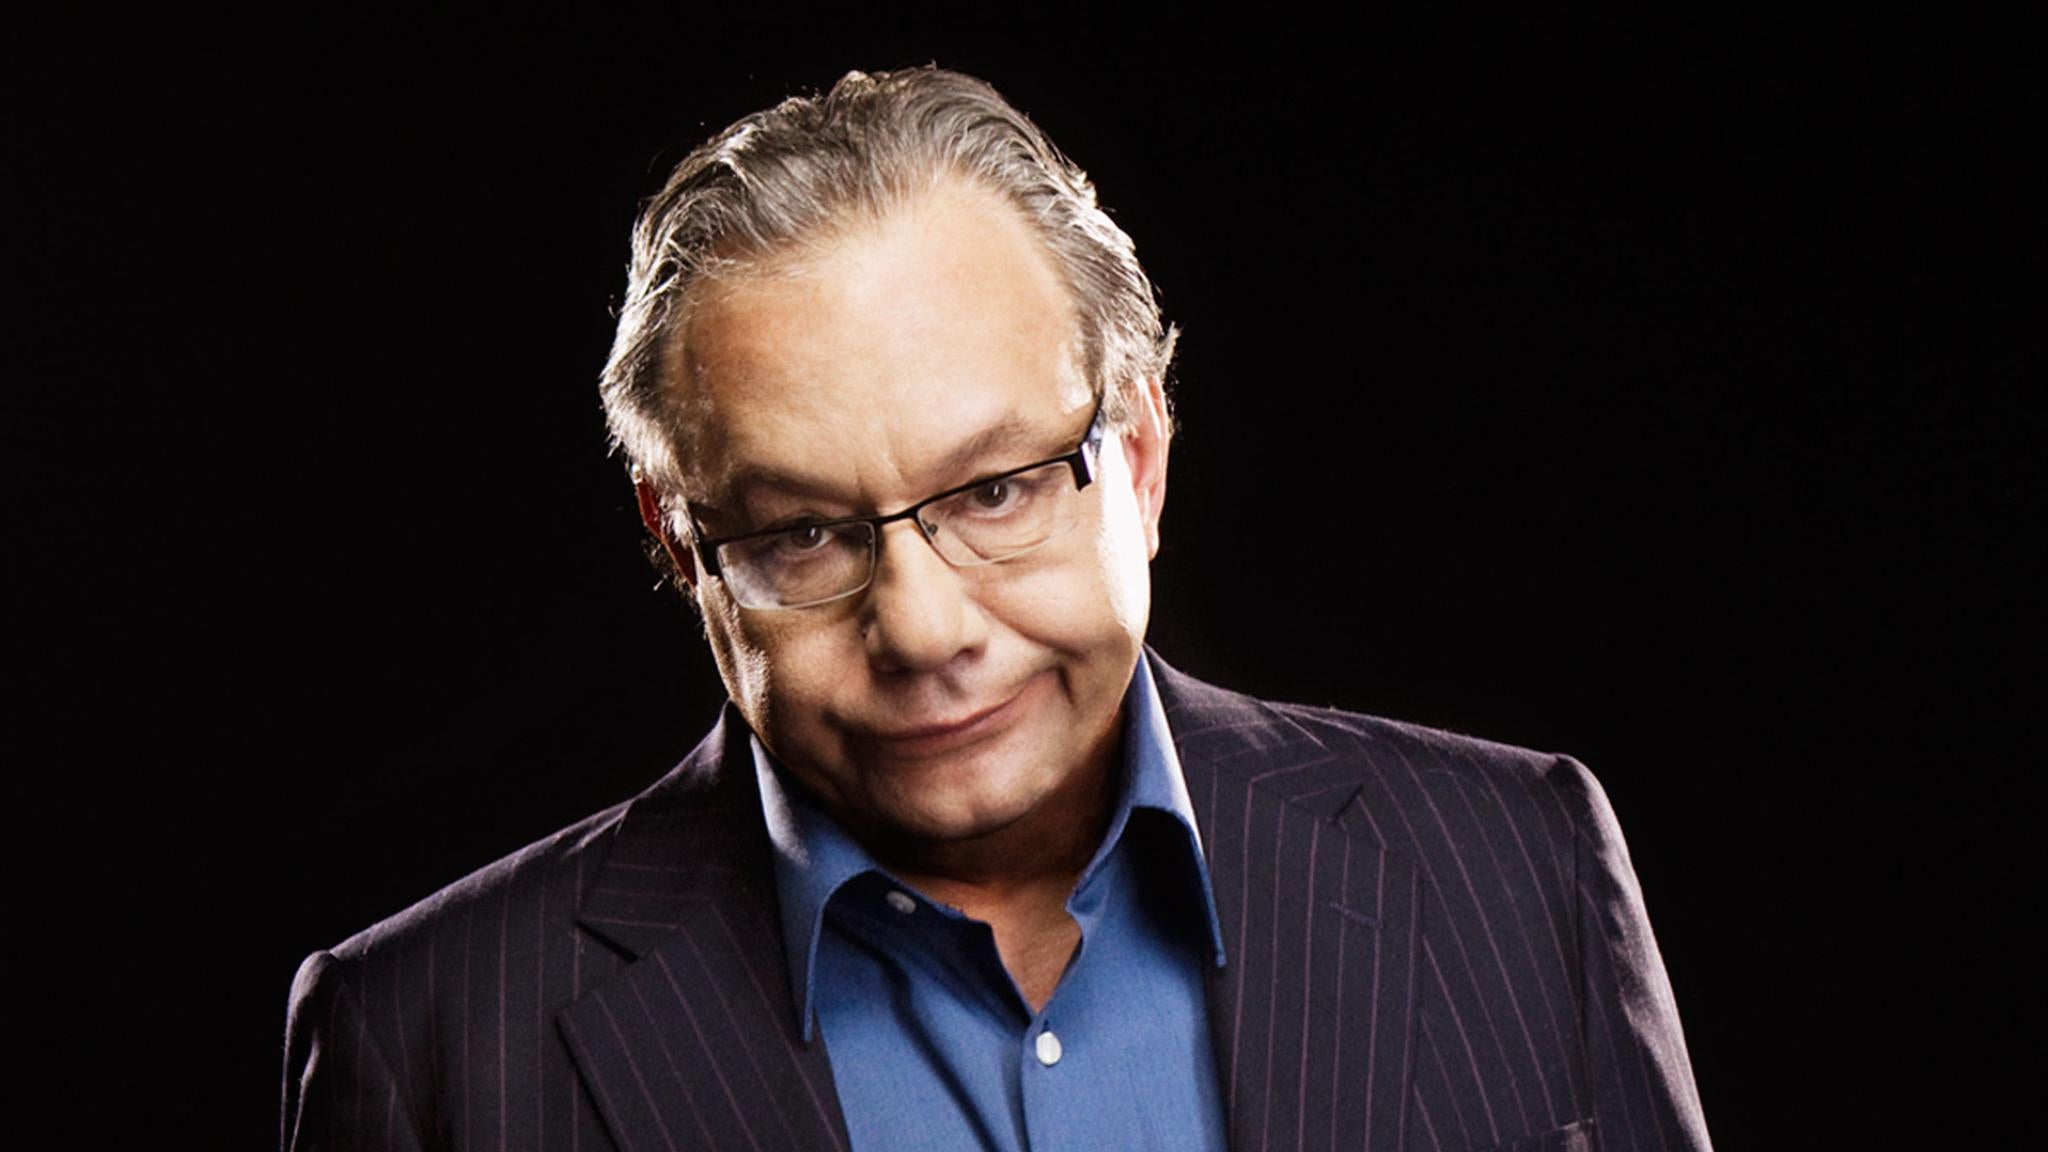 Lewis Black - The Rant, White Blue Tour at Ovens Auditorium